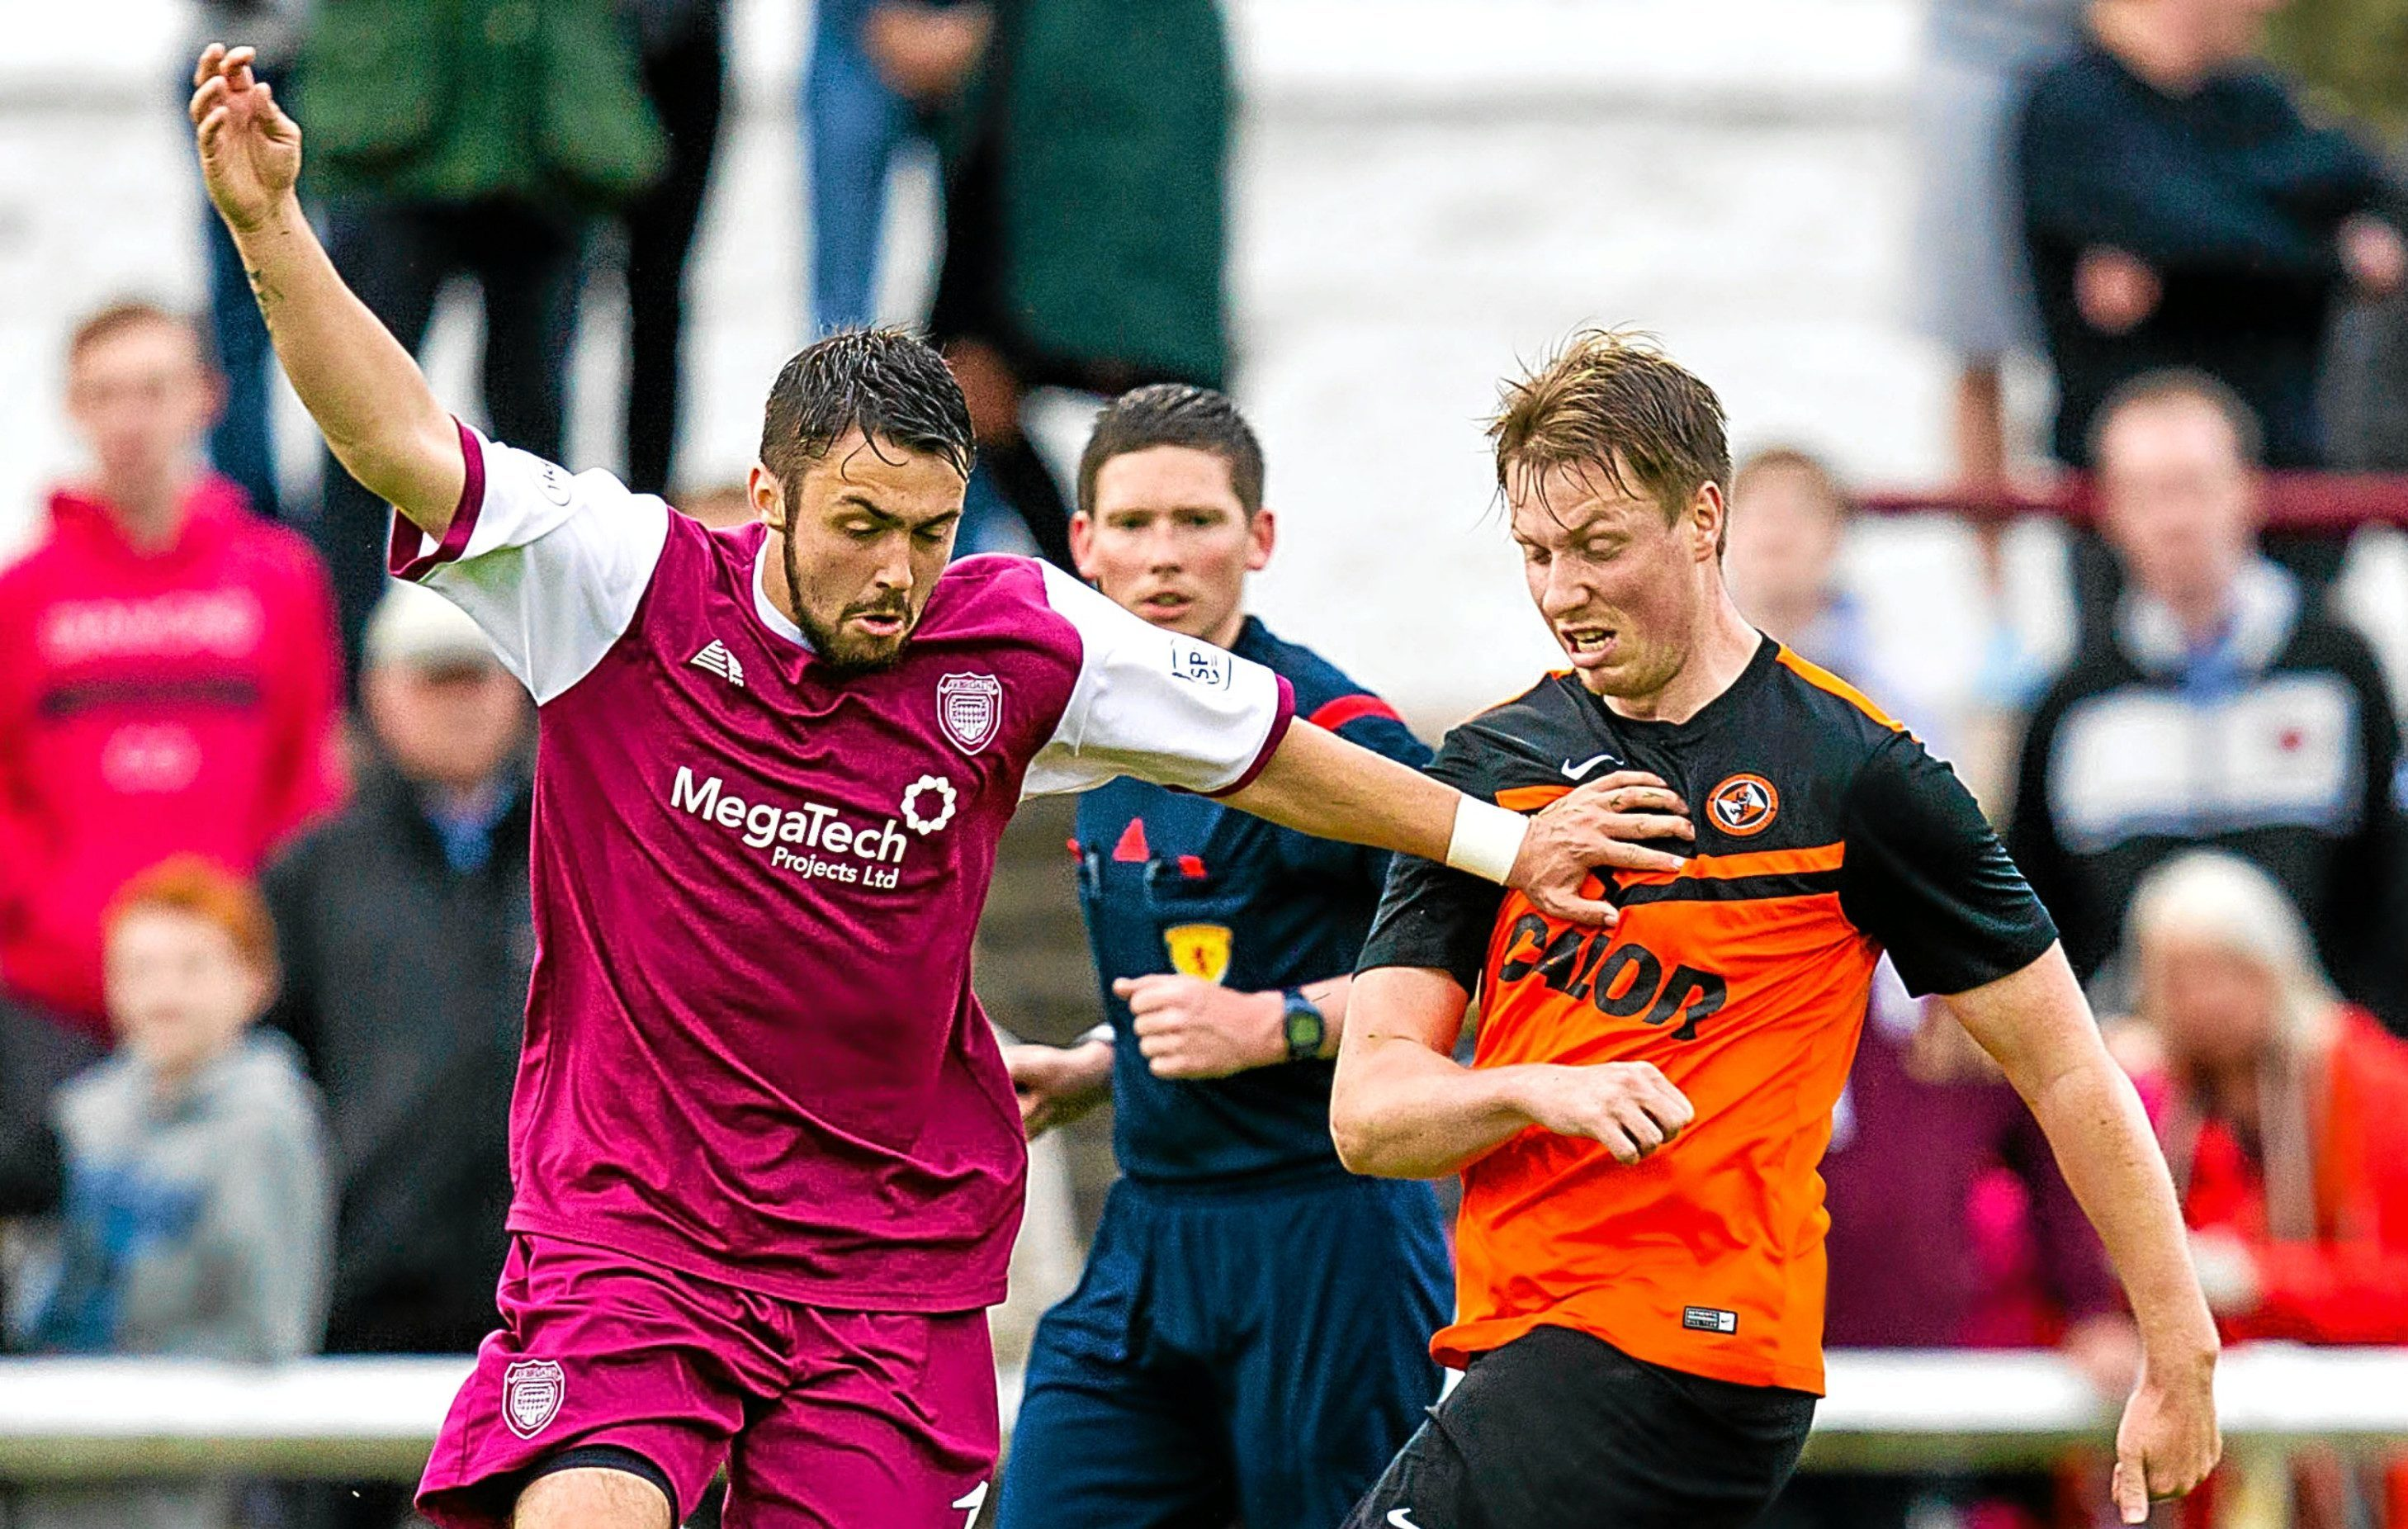 Jordan Moore in action for United in a friendly against Arbroath.